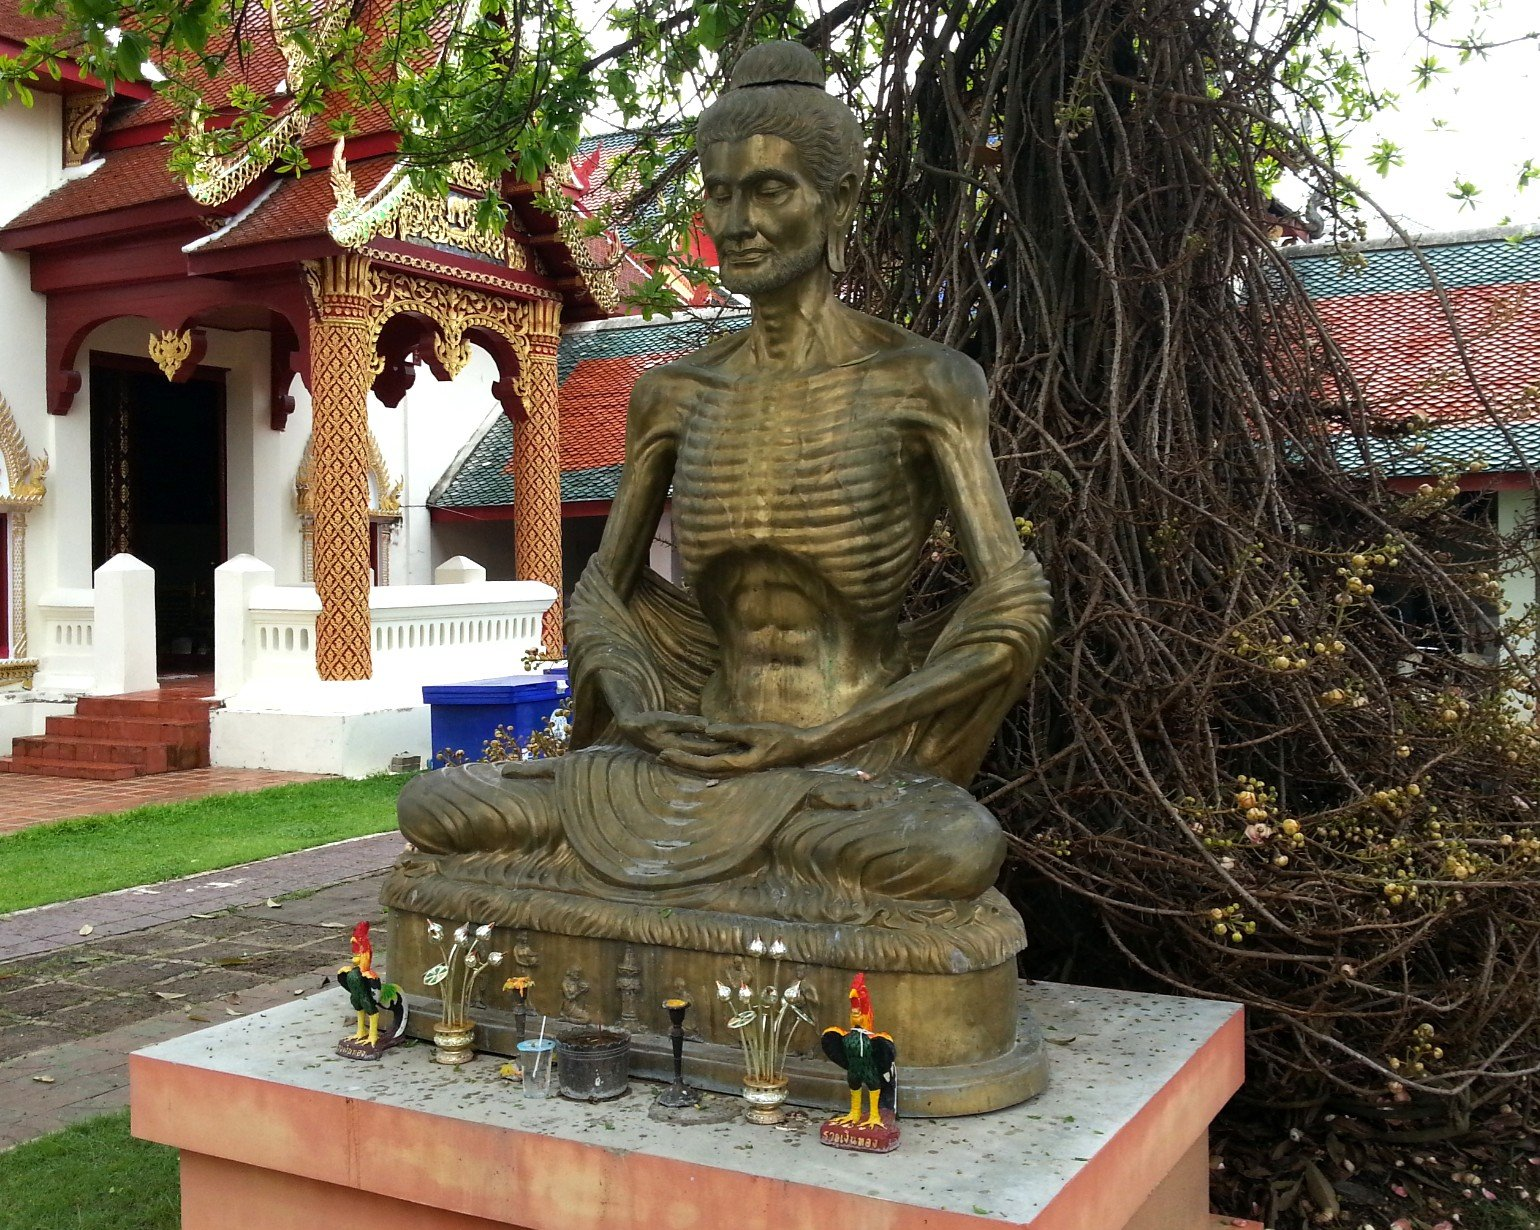 Emaciated Buddha statue at Wat Phra That Hariphunchai